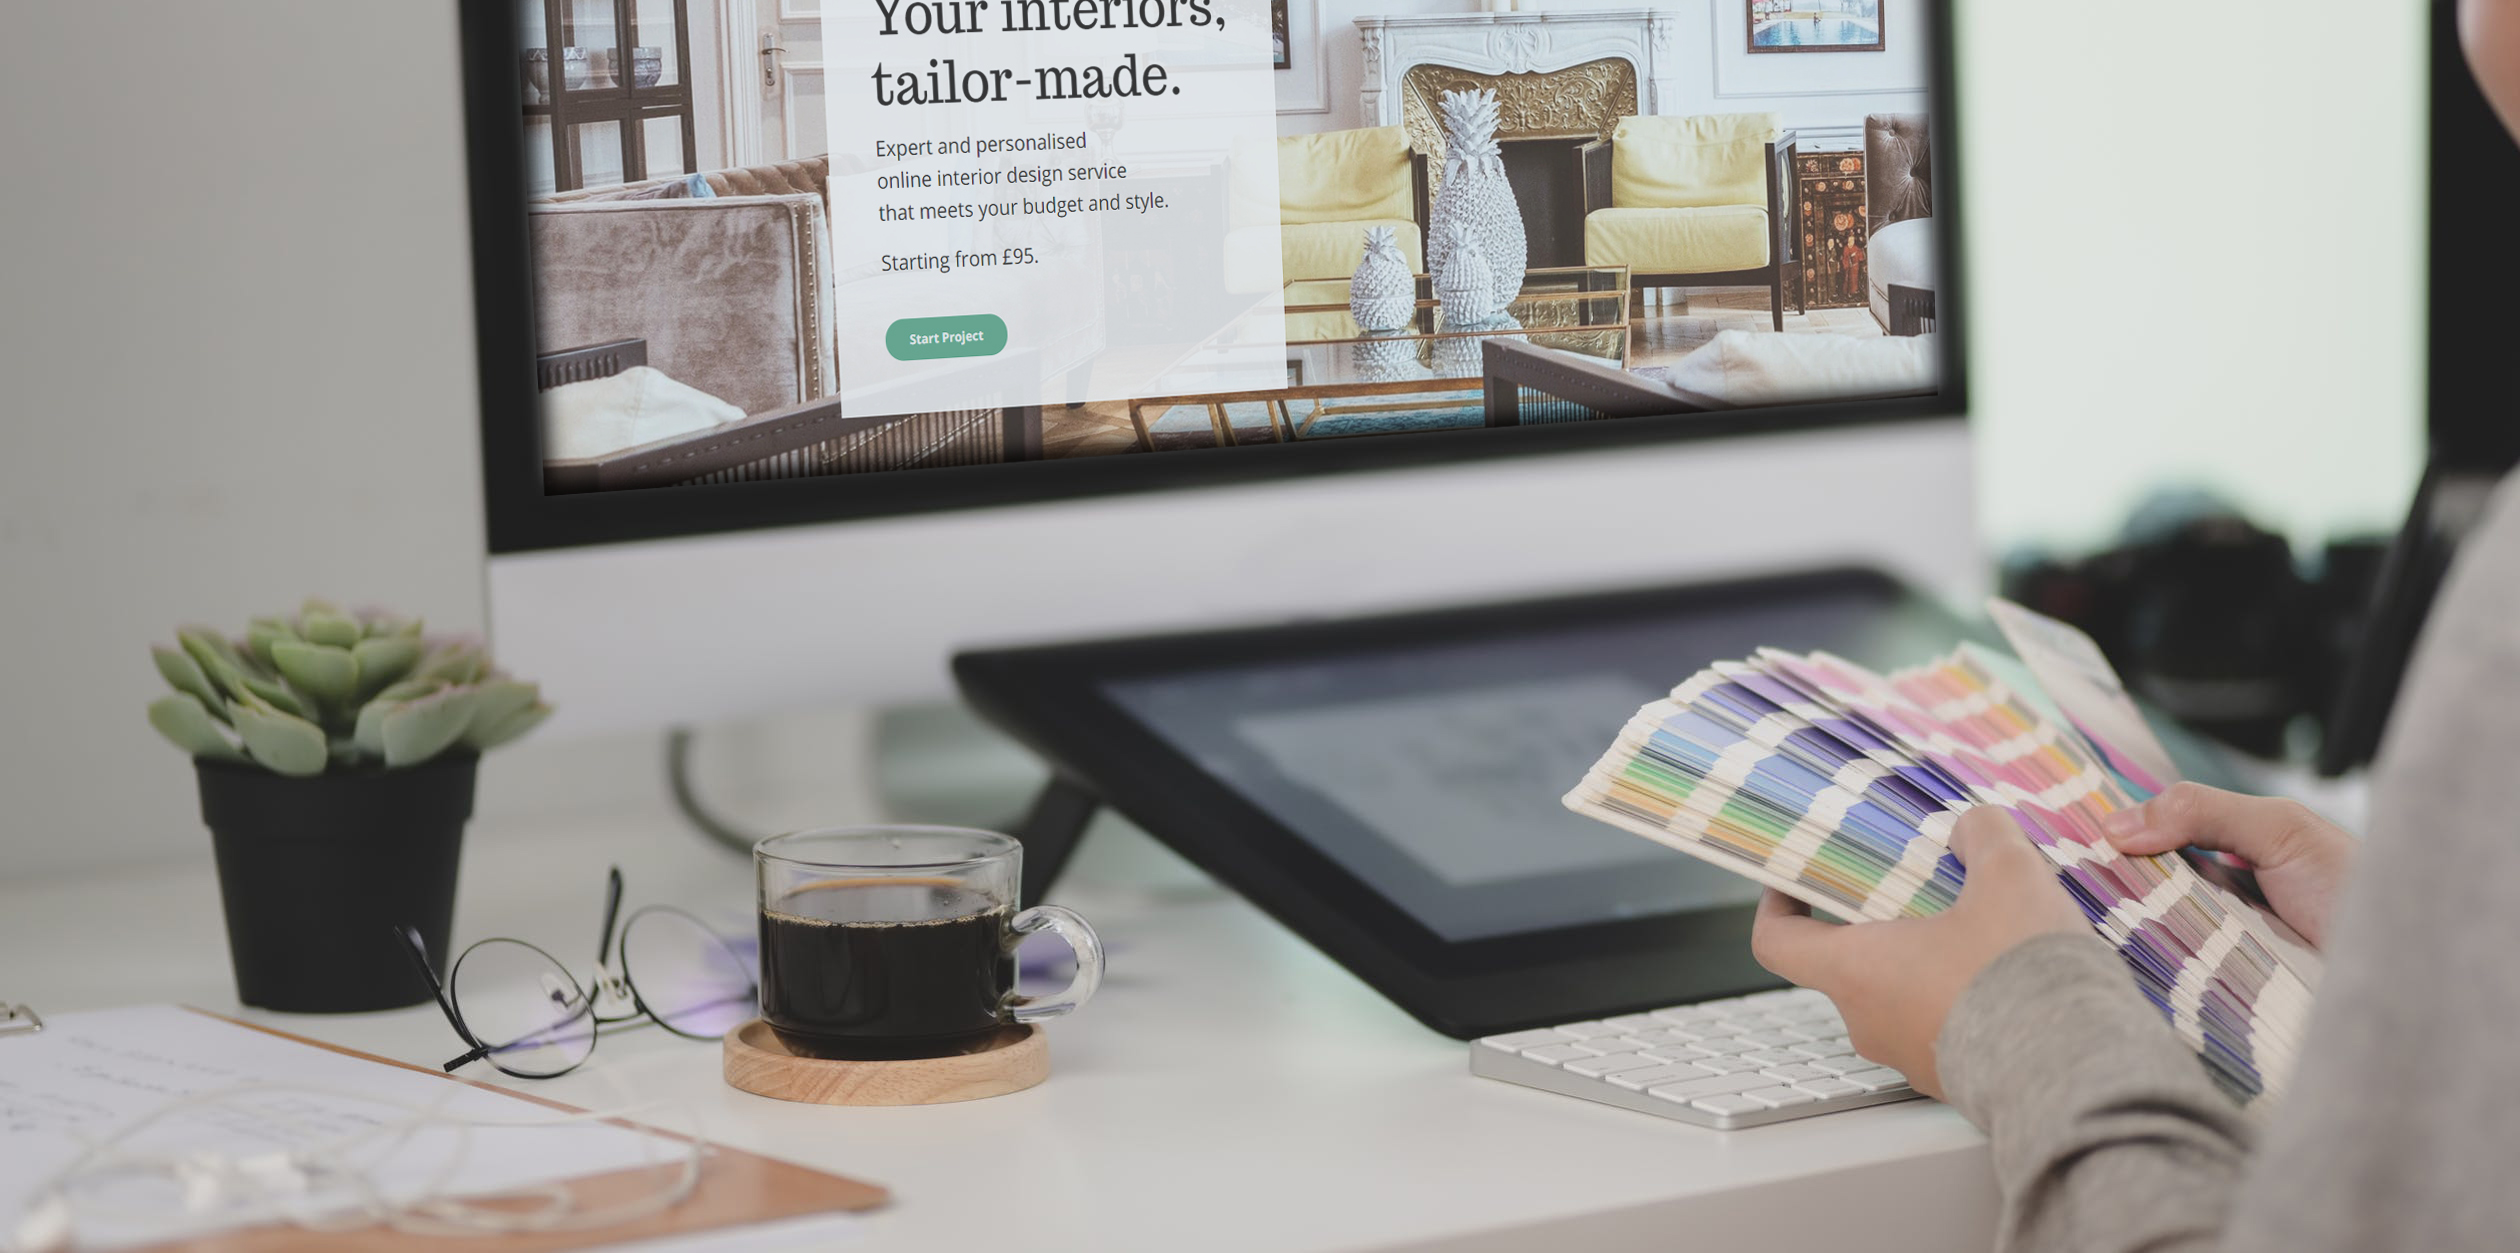 Online interior design could offer the same bespoke service at a more affordable price tag.